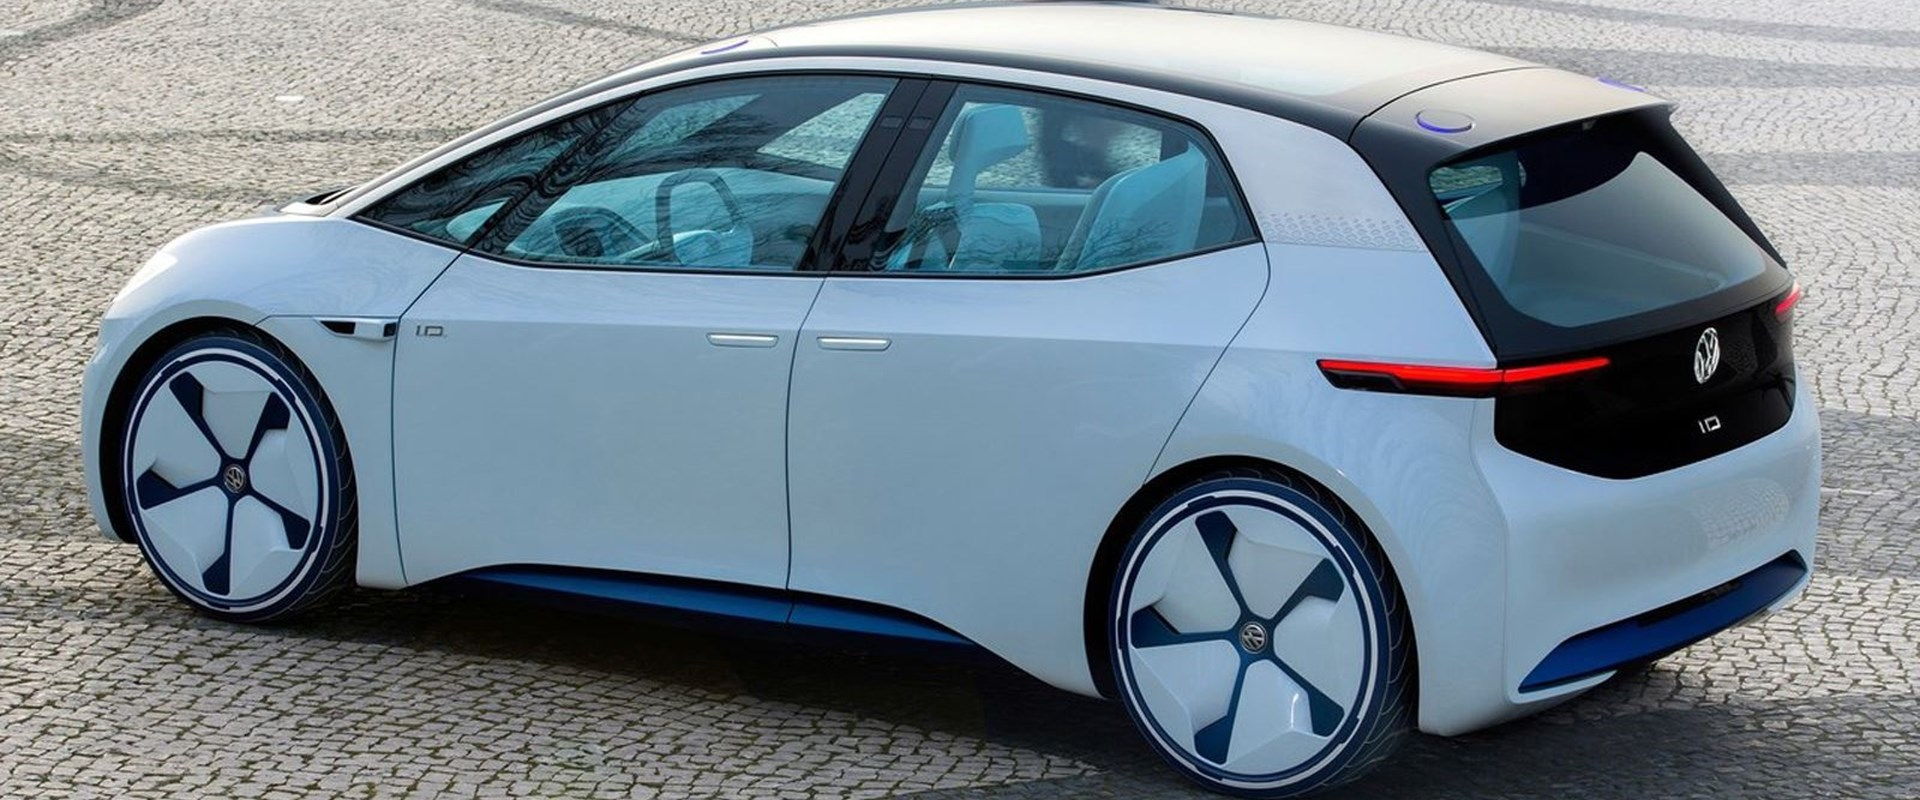 volkswagen to start building all-electric id hatchback in 2019